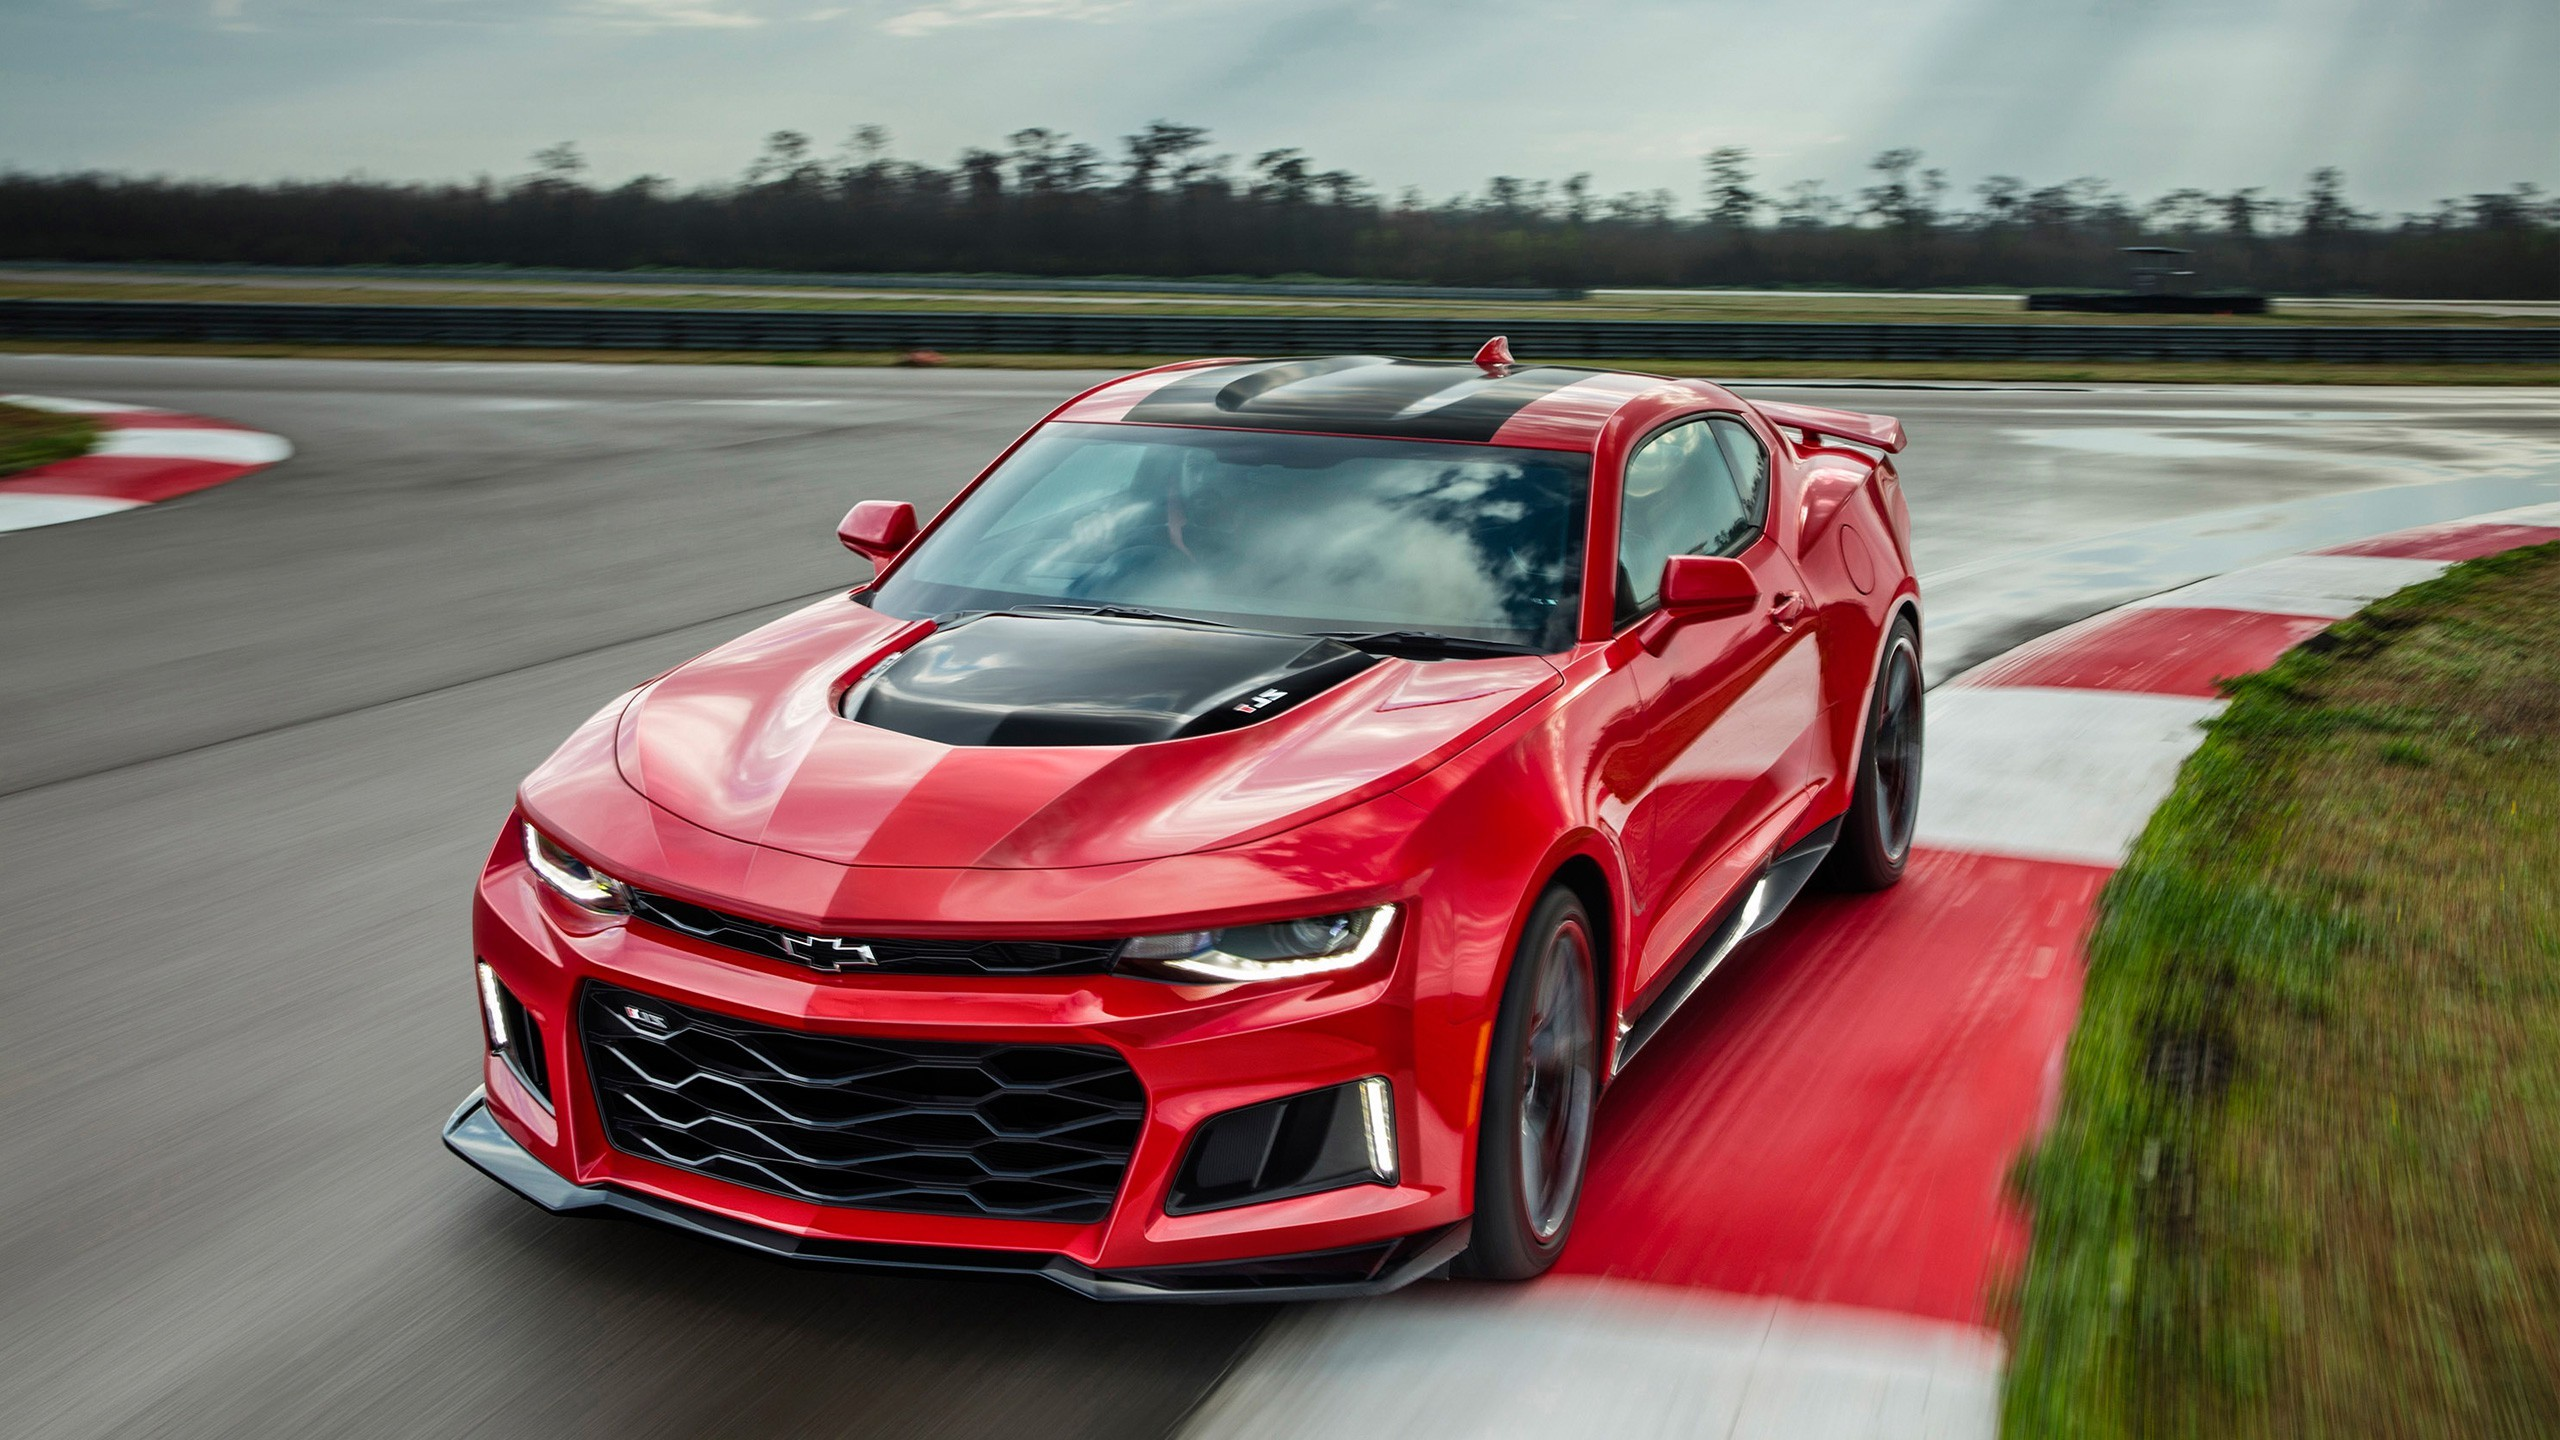 Res: 2560x1440, Chevrolet Camaro ZL1 Wallpapers 11 - 2560 X 1440